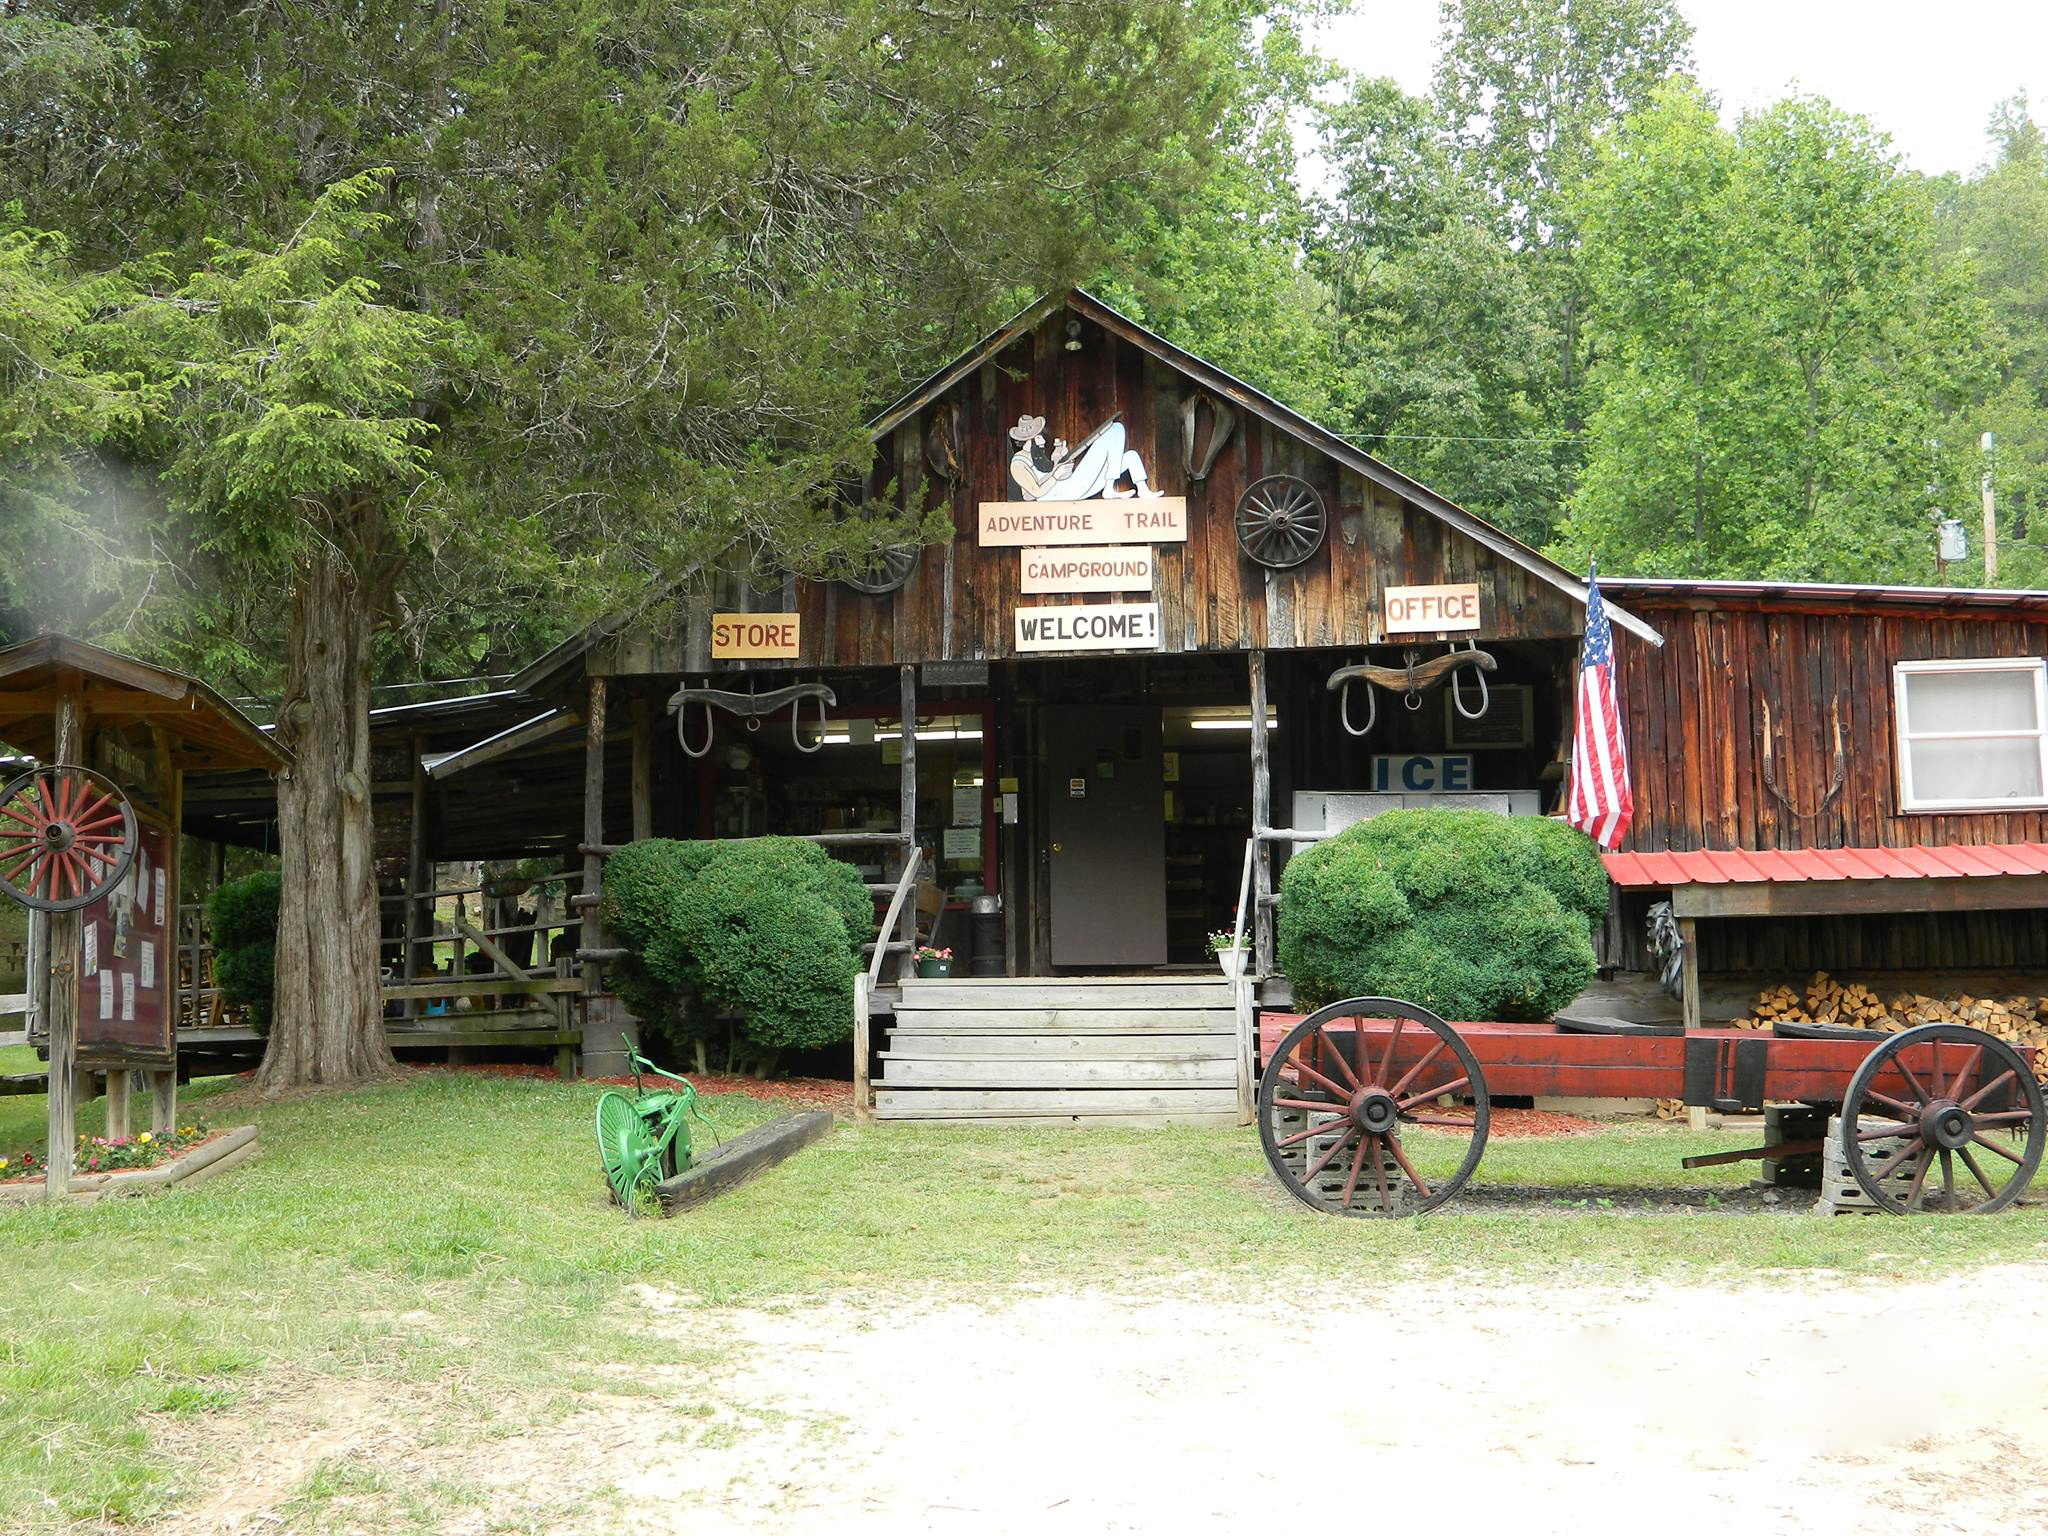 Photo of Adventure Trail Campground